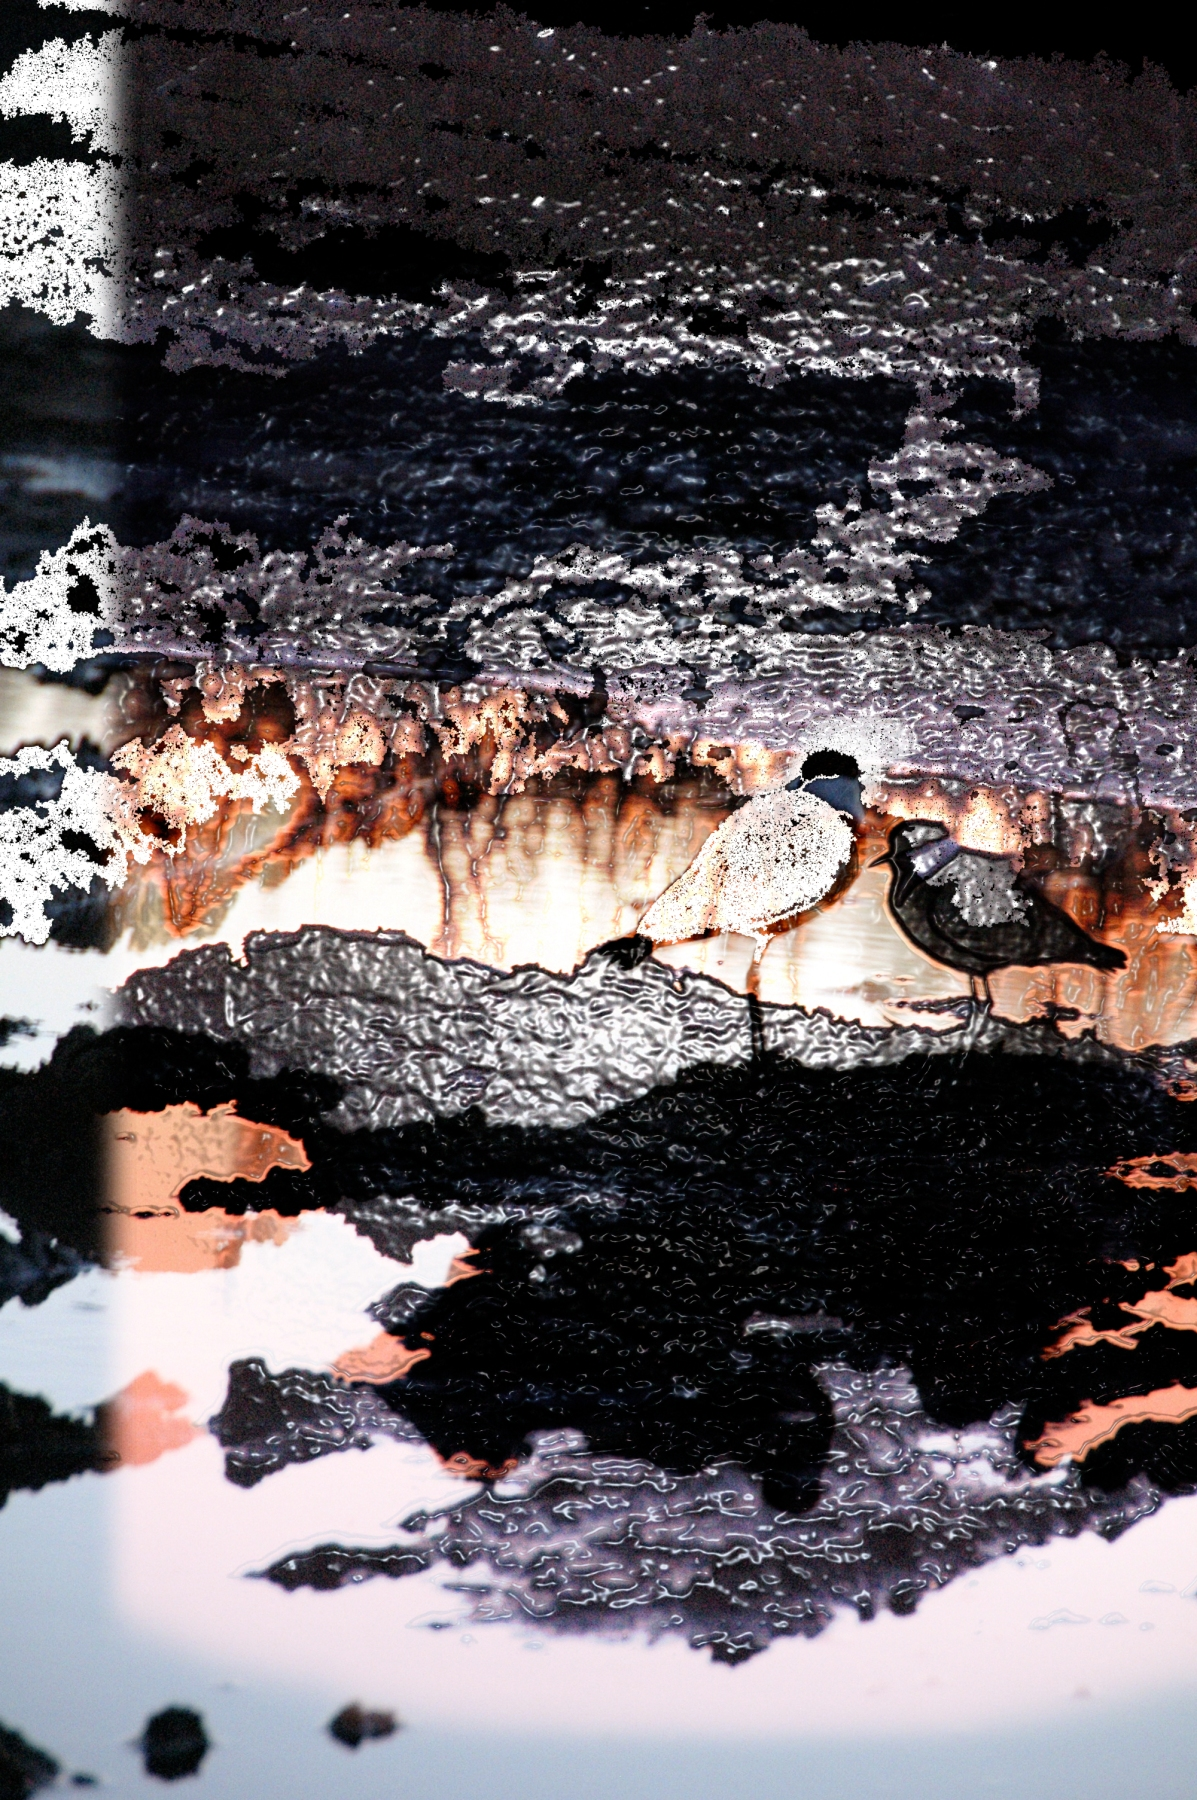 Night birds, digital photo montage ©2013 Michael Dickel